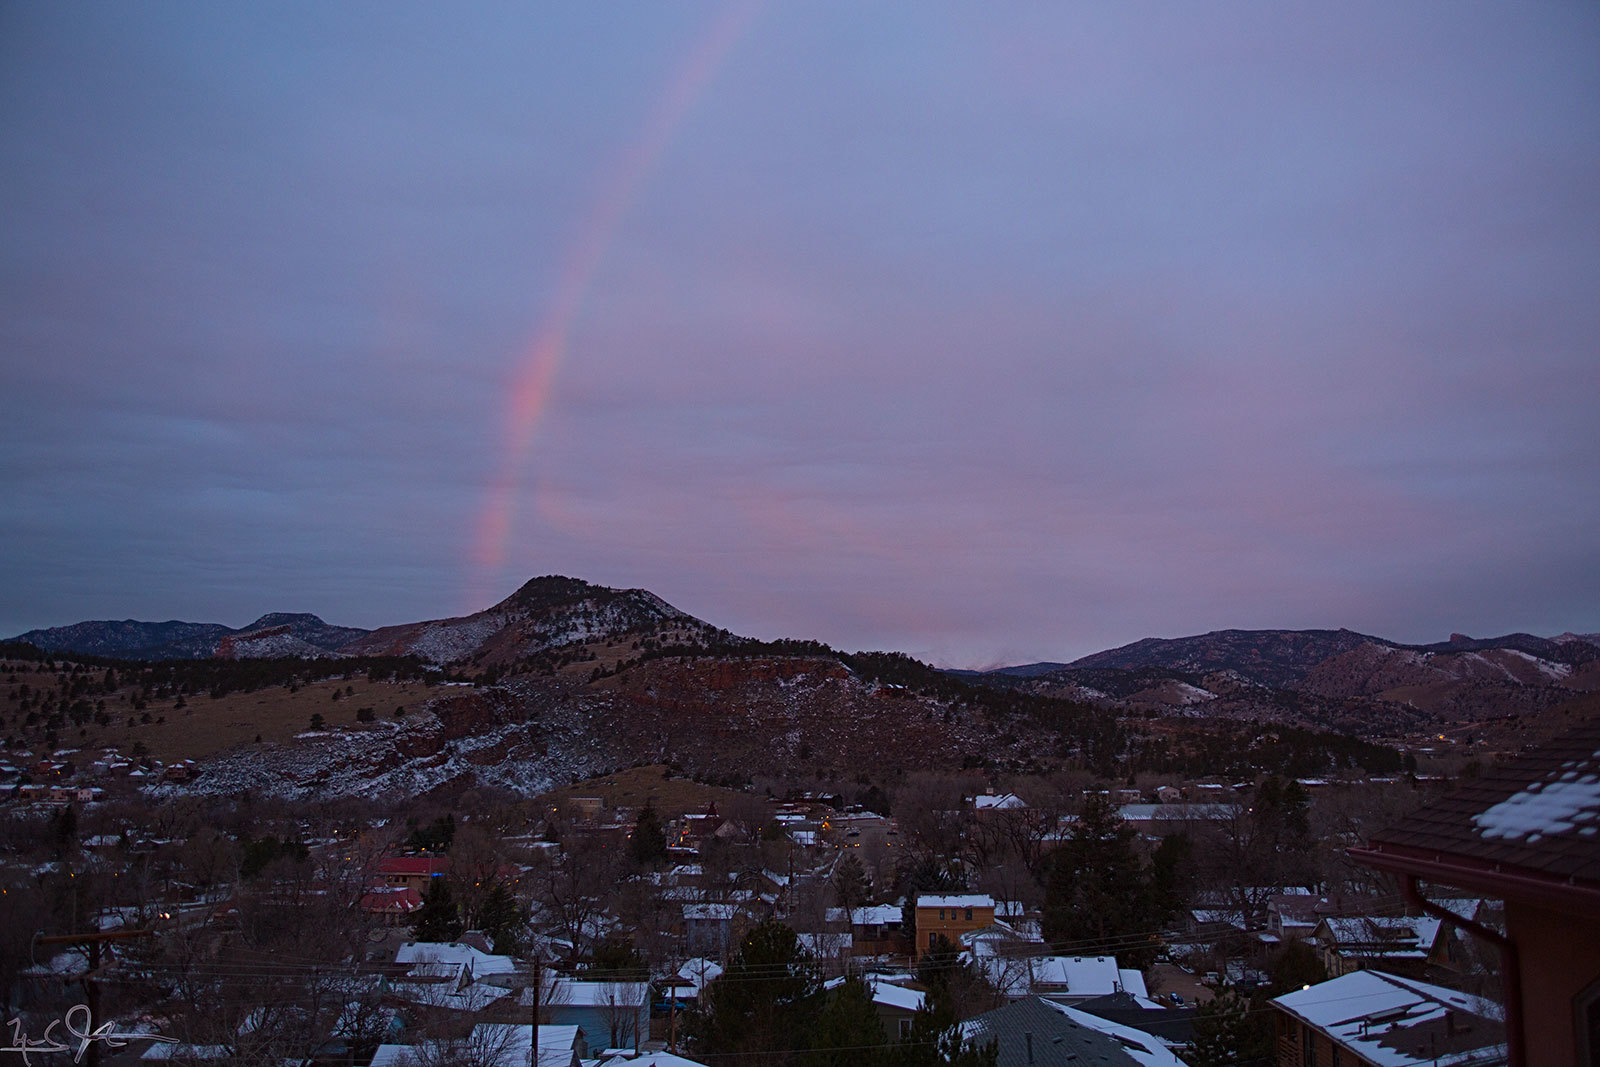 Massive rainbow over Lyons the morning of 25 Nov 2013.  Lasted only one minute, but it was a beauty.